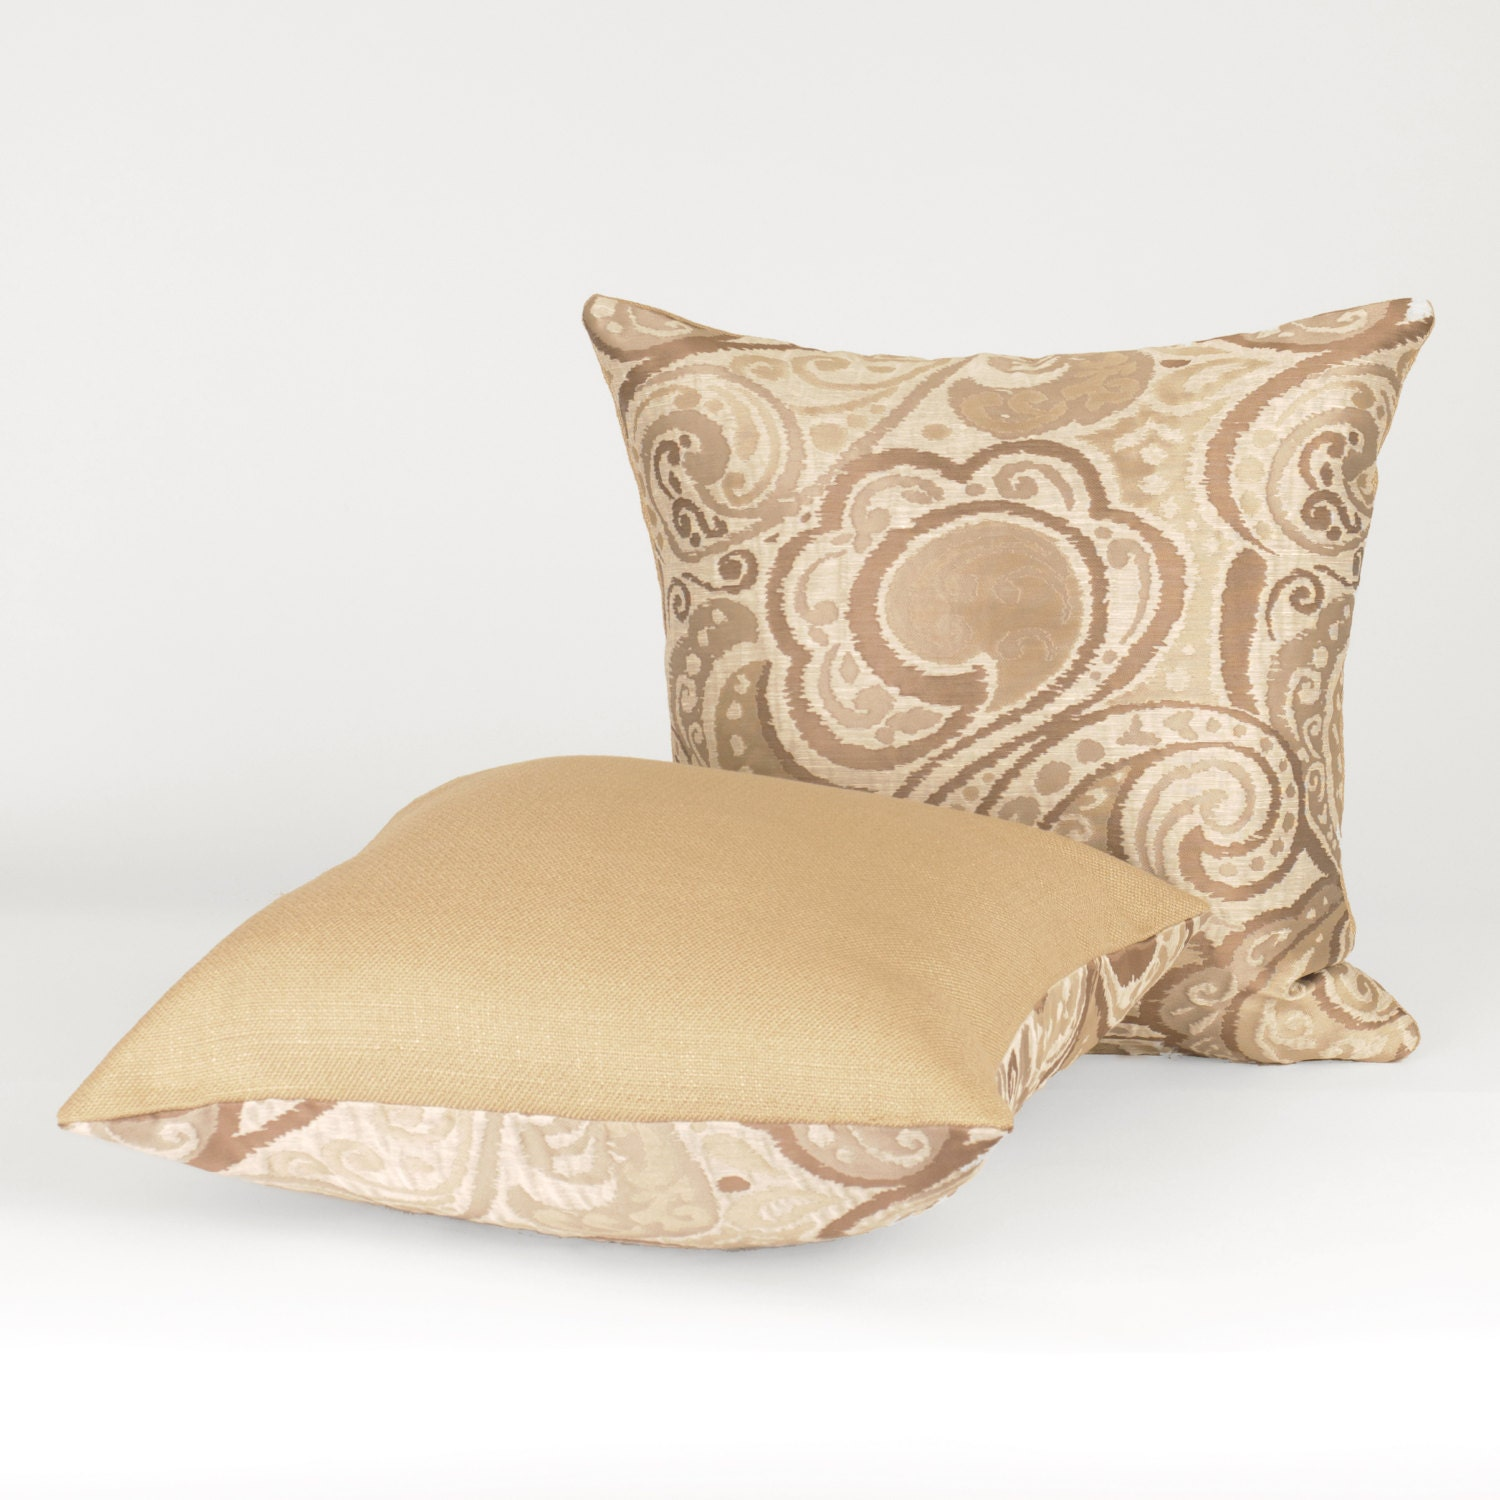 Shades of Taupe Square Throw Pillow with Insert 18 x by Fabrinique